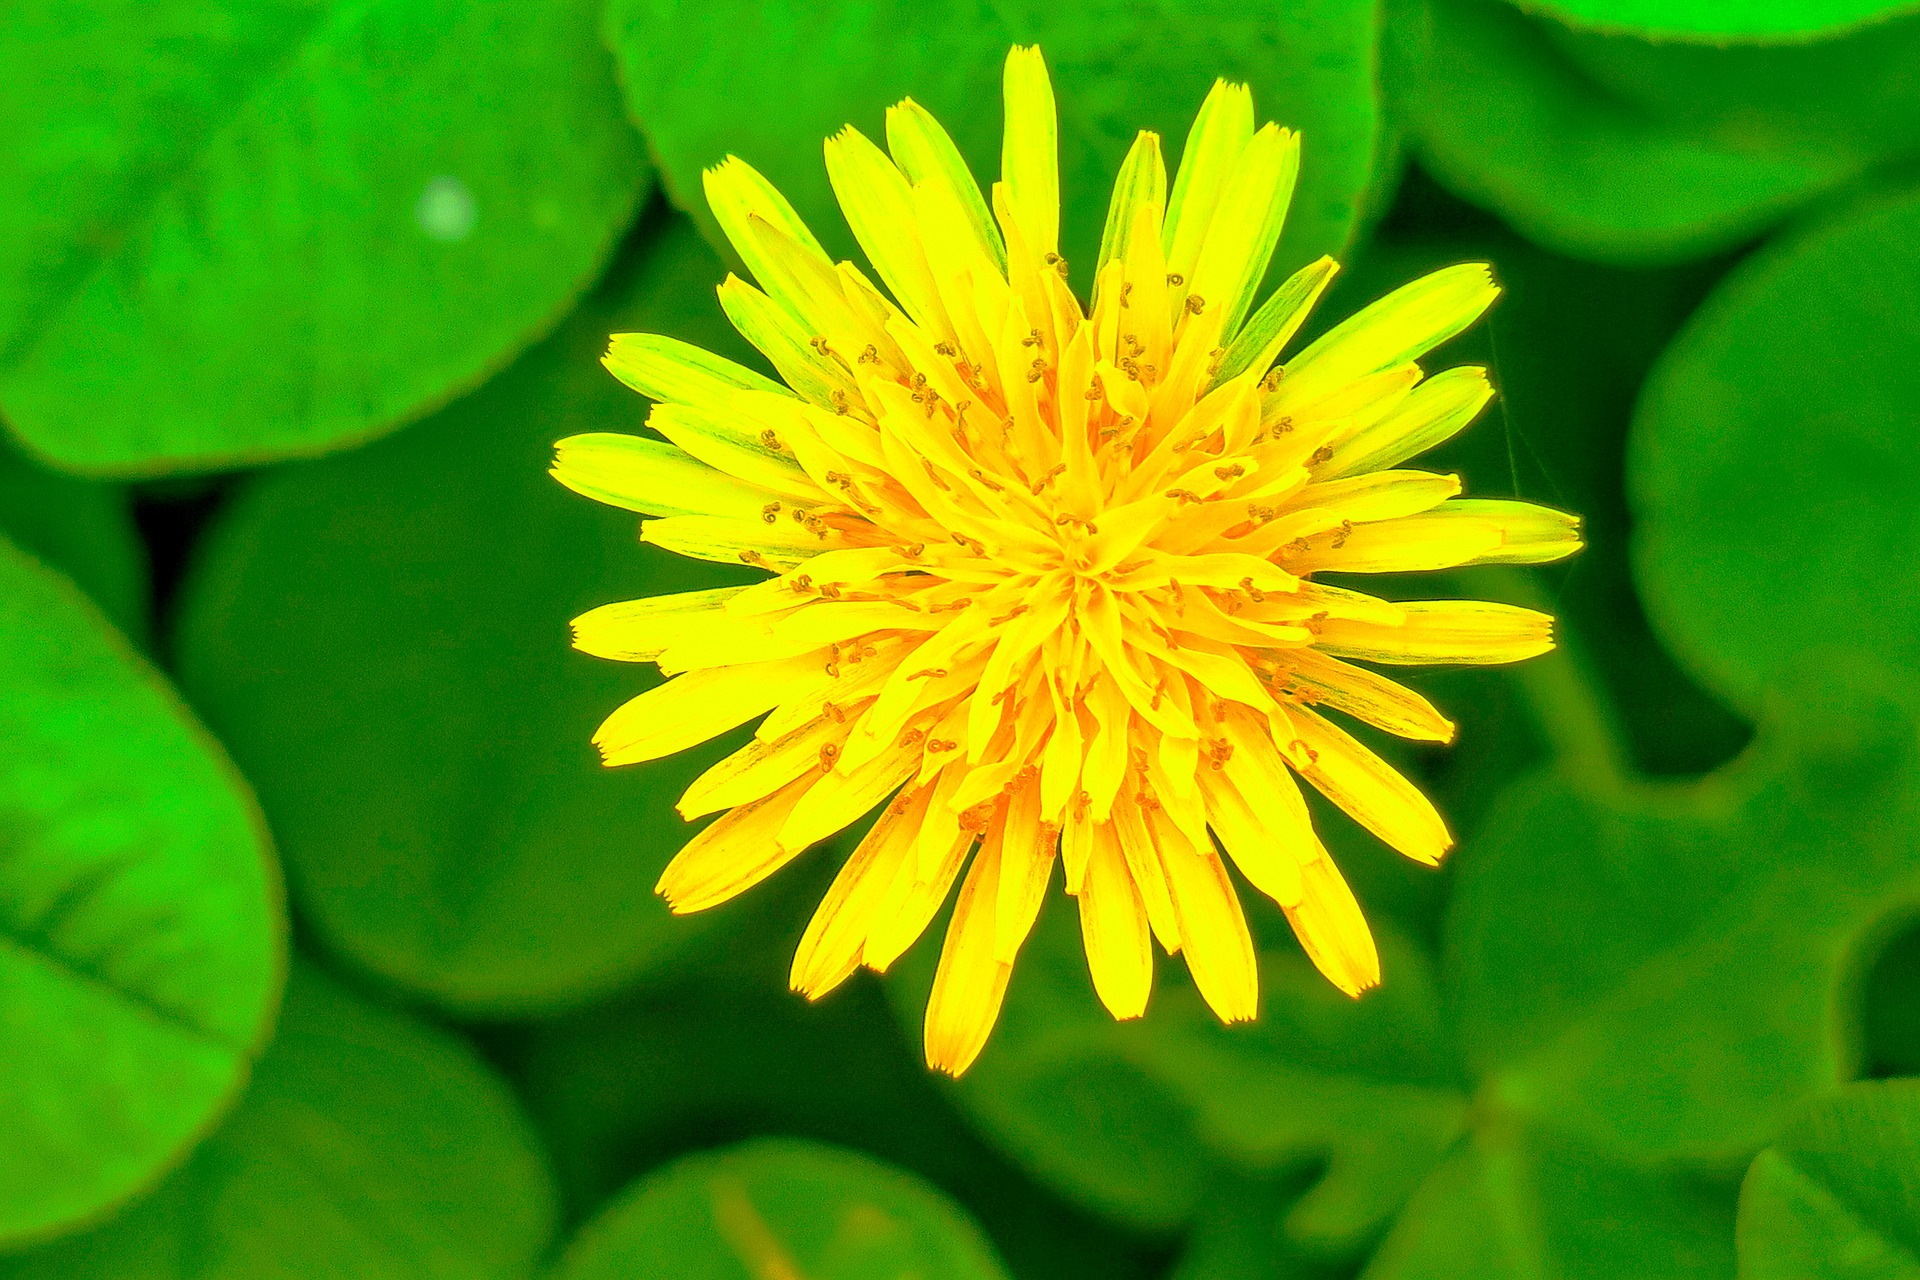 chrysanthemum-flower repels mosquitoes